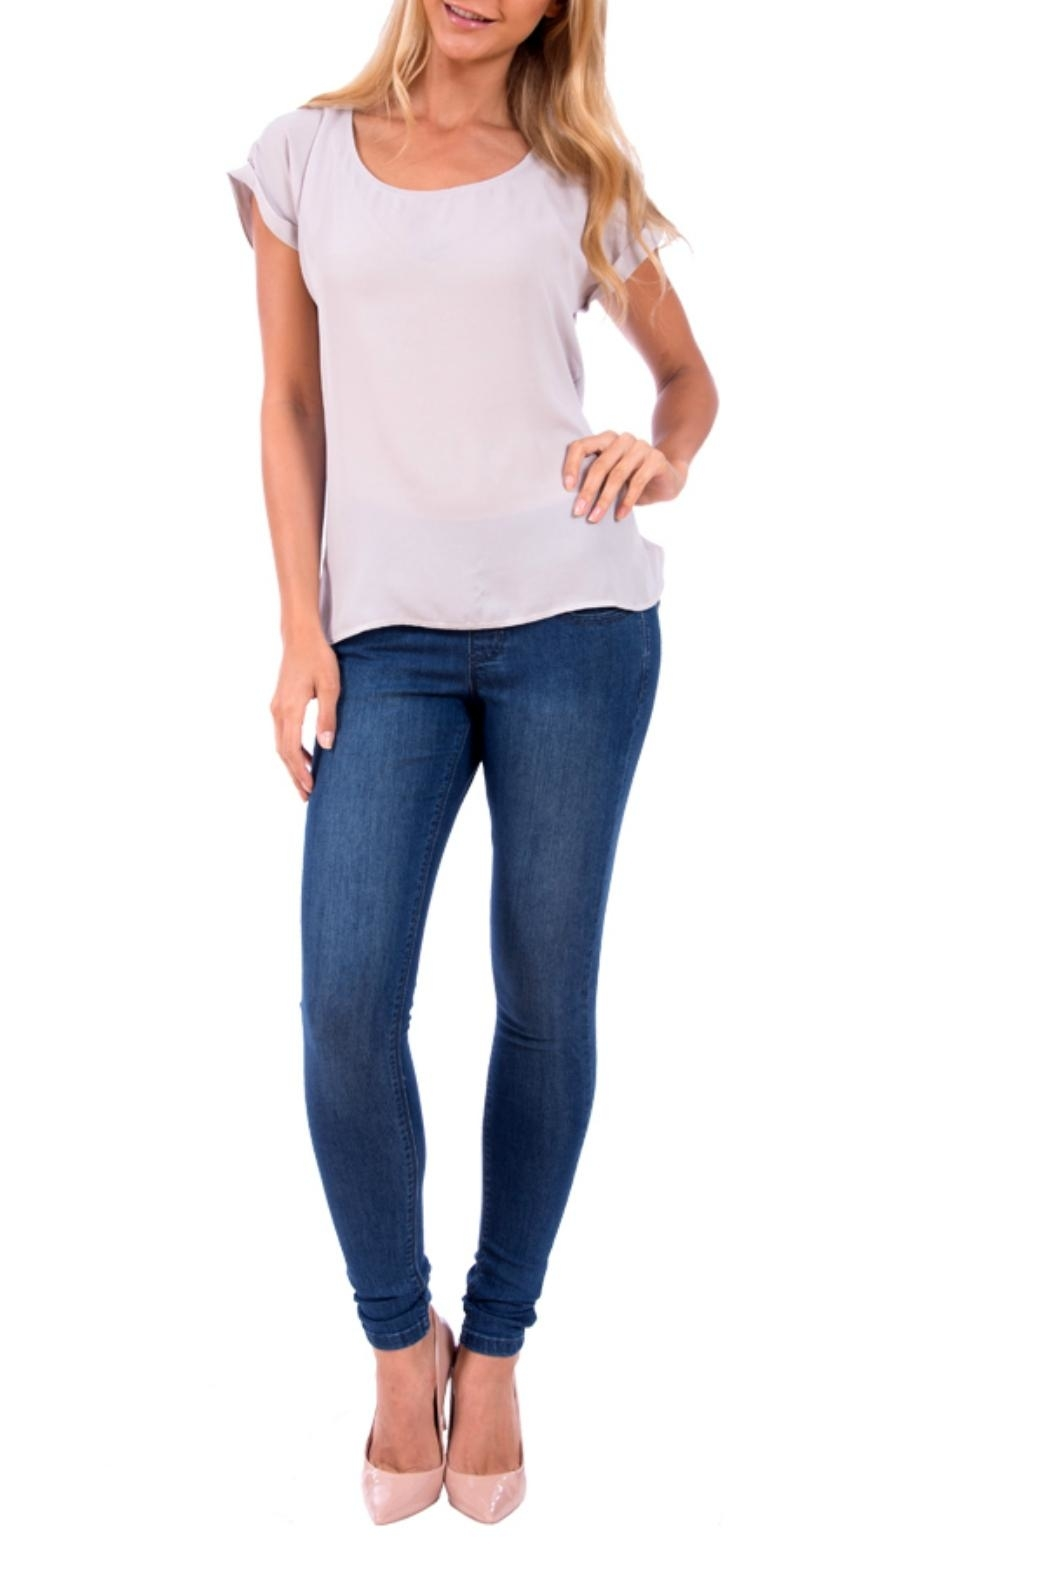 Lola Jeans Anna Pull on Denim Pant - Back Cropped Image